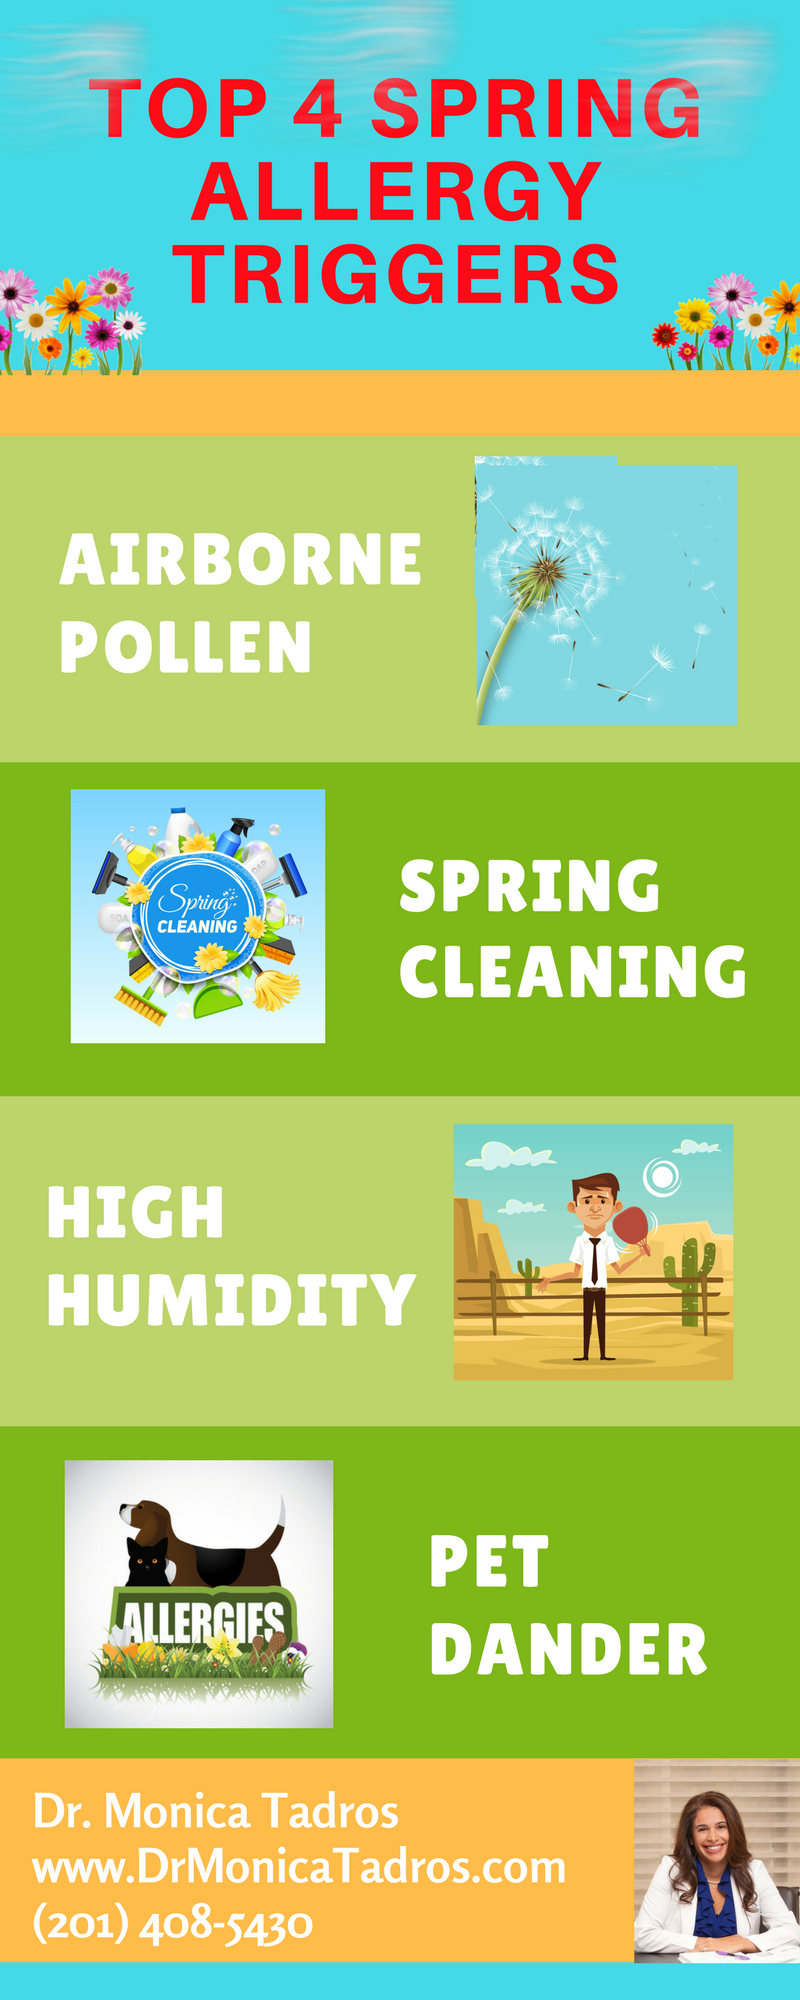 Top-4-spring-allergy-triggers-2